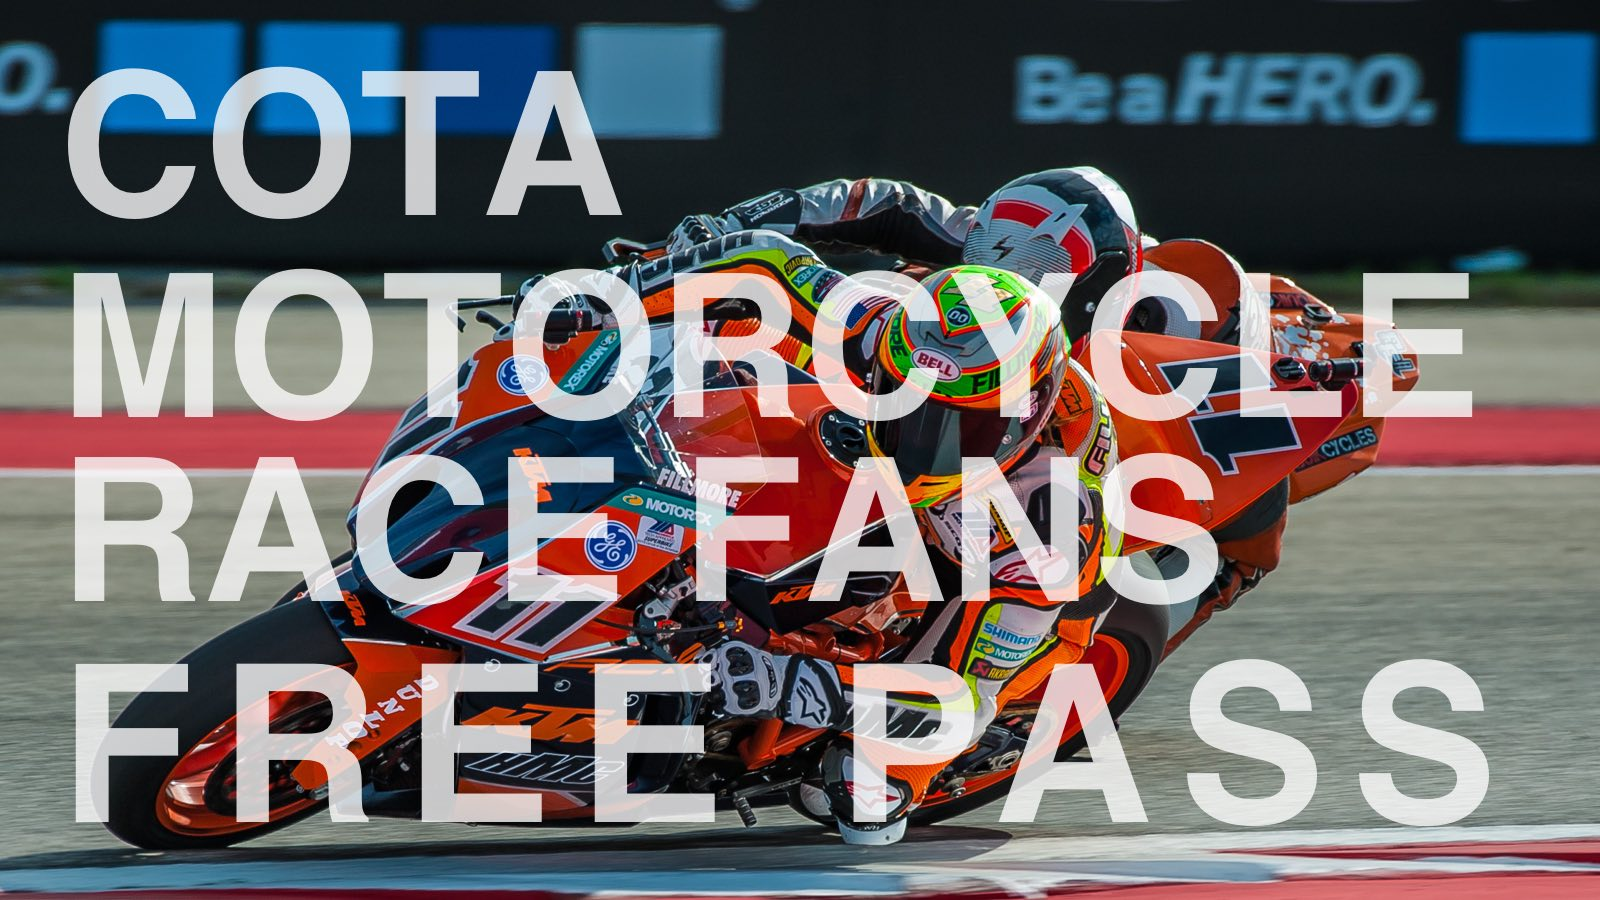 Free Pass for Motorcycle Race Fans at COTA